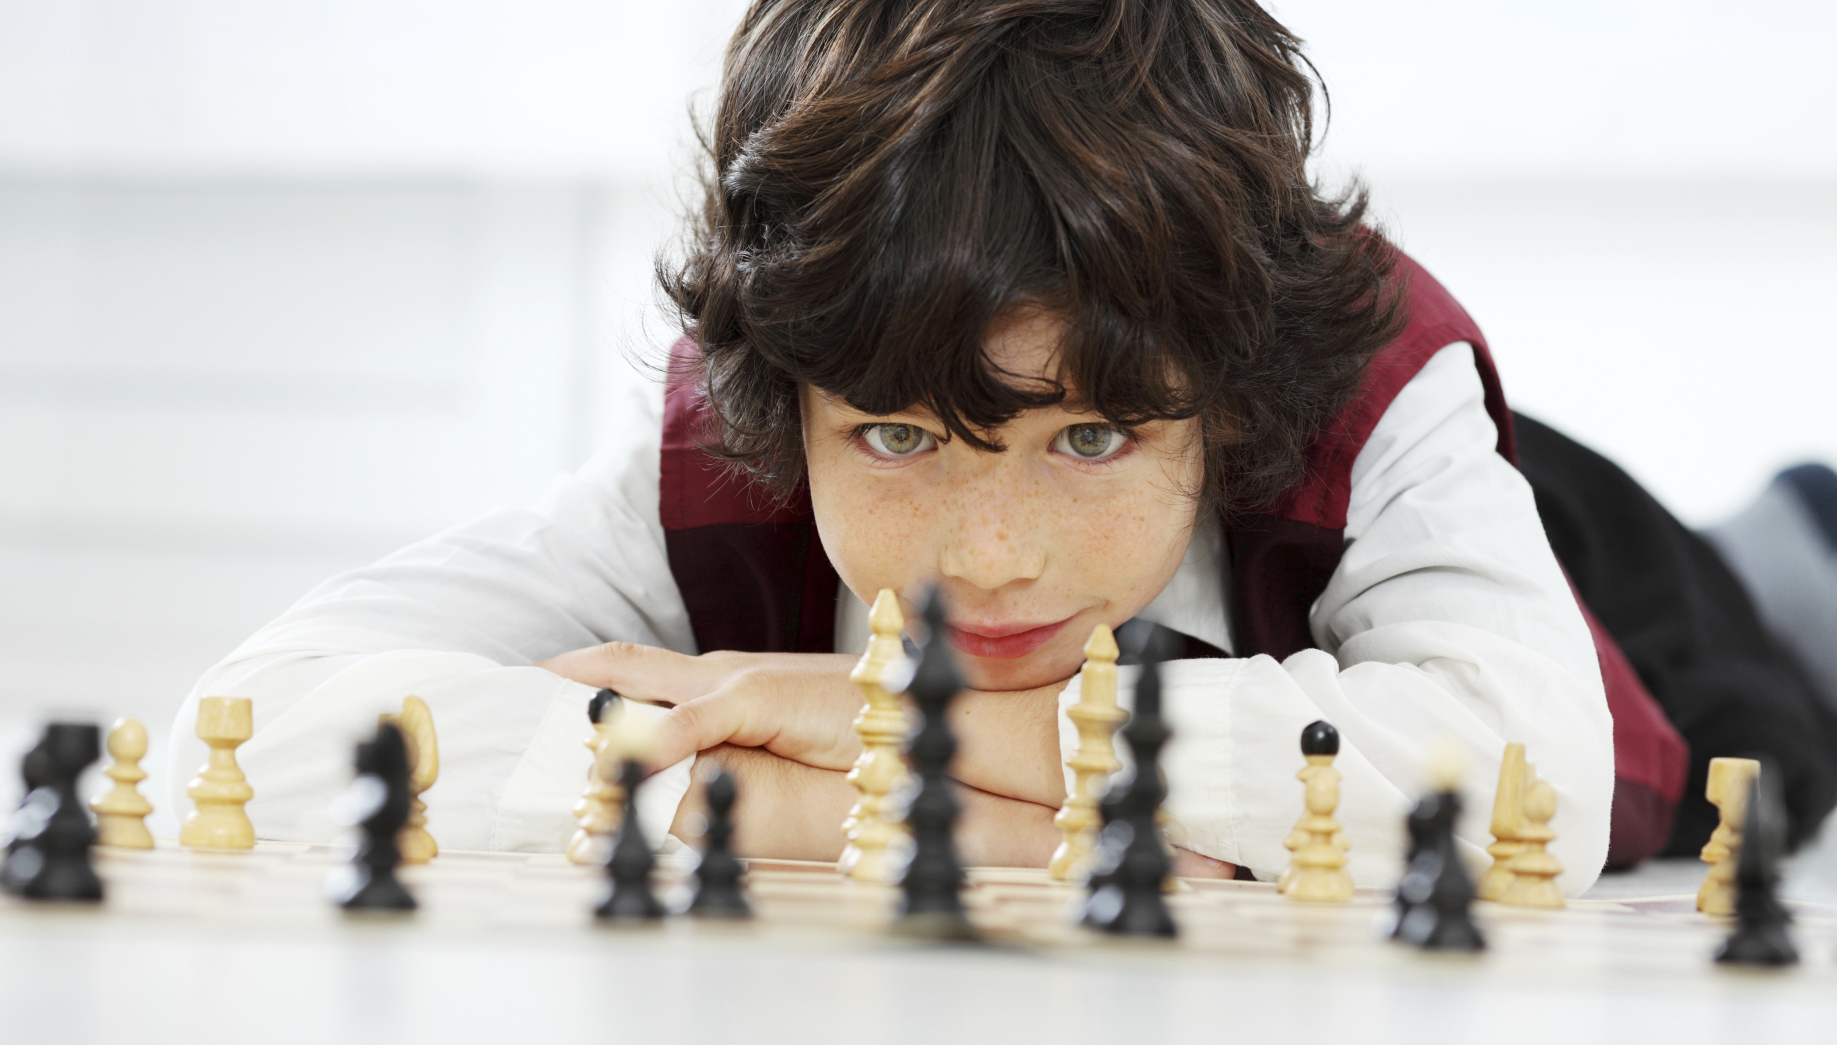 Portrait of an 8 year old boy thinking and looking at chess pieces.  [url=http://www.istockphoto.com/search/lightbox/9786766][img]http://img255.imageshack.us/img255/3431/sportt.jpg[/img][/url]  [url=http://www.istockphoto.com/search/lightbox/9786682][img]http://img638.imageshack.us/img638/2697/children5.jpg[/img][/url]